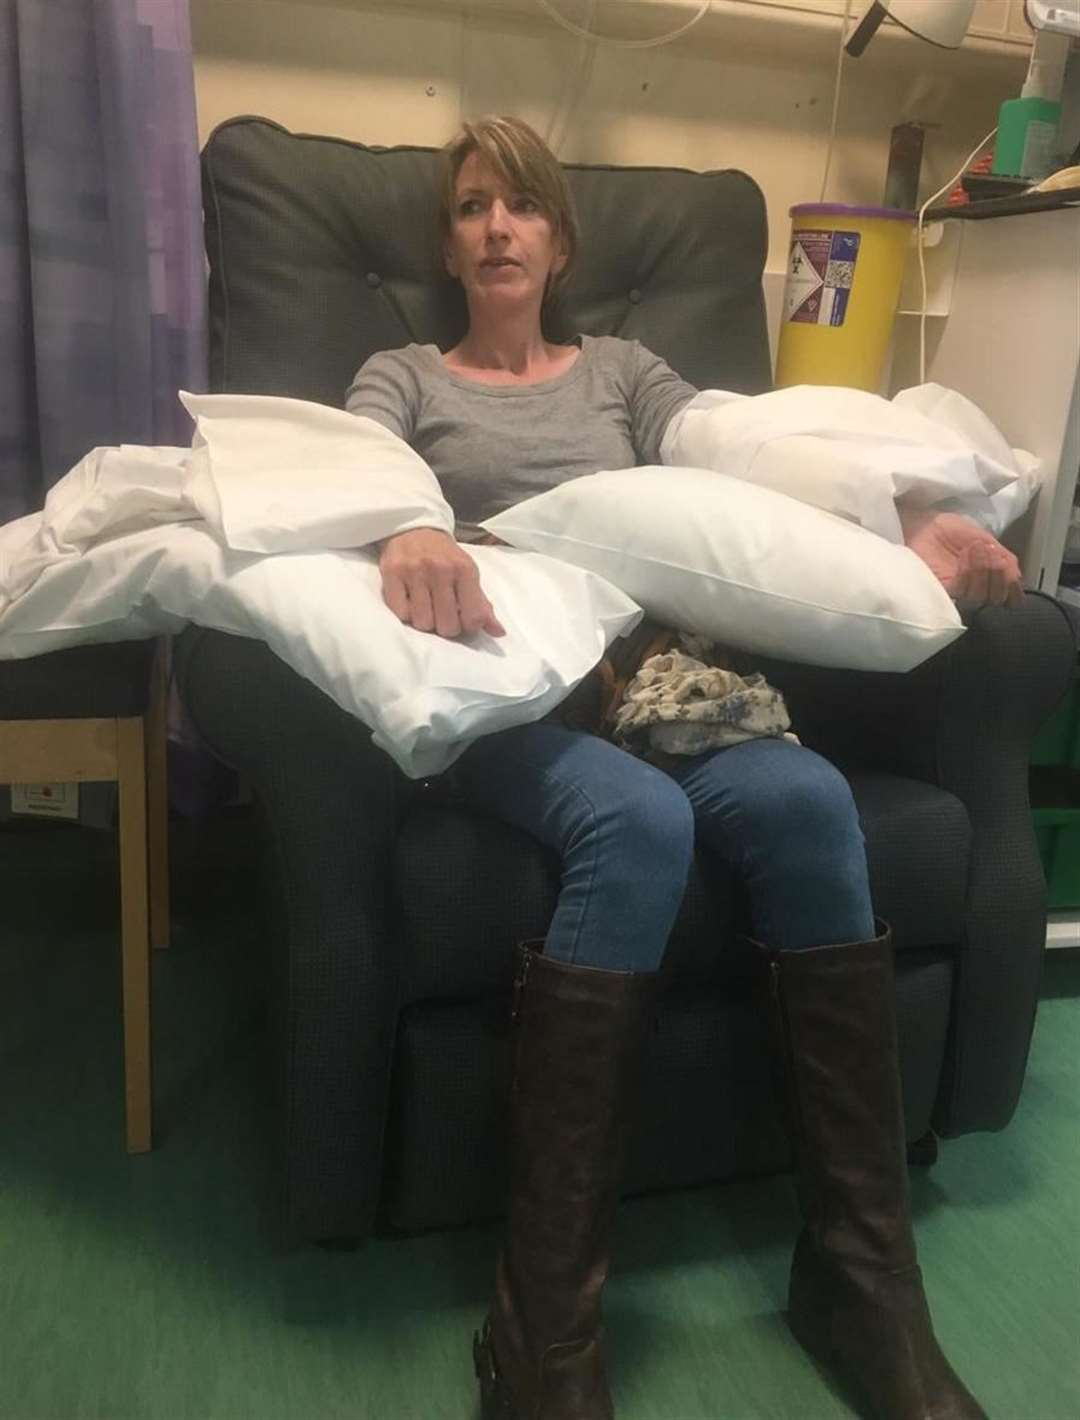 Janice says she suffered from aching bones, receding gums, nausea, dizziness and fatigue while she was on chemotherapy